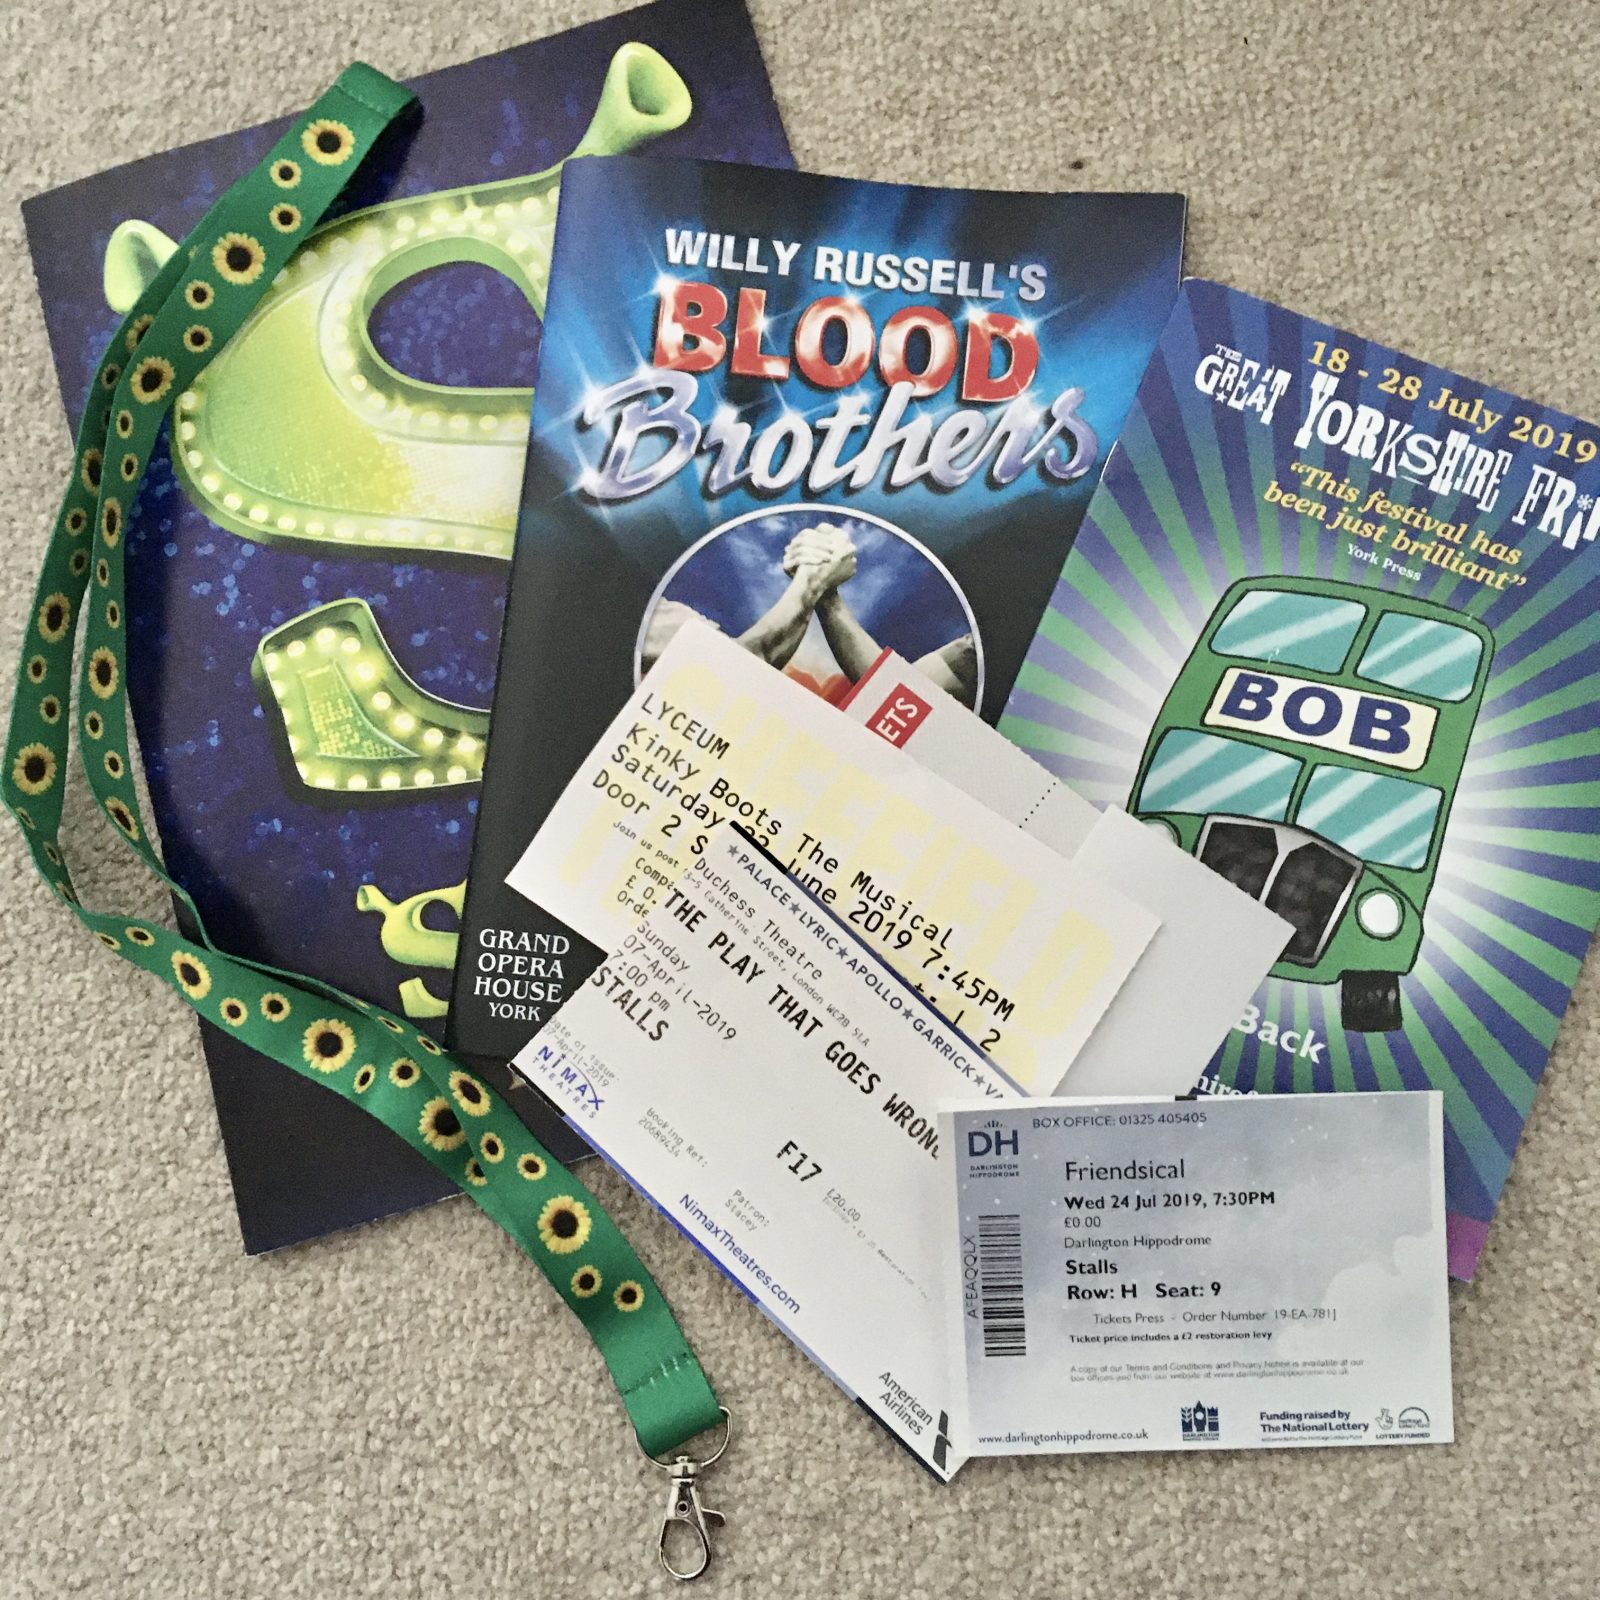 theatre programmes and tickets laid on floor, with green sunflower lanyard draped over the top